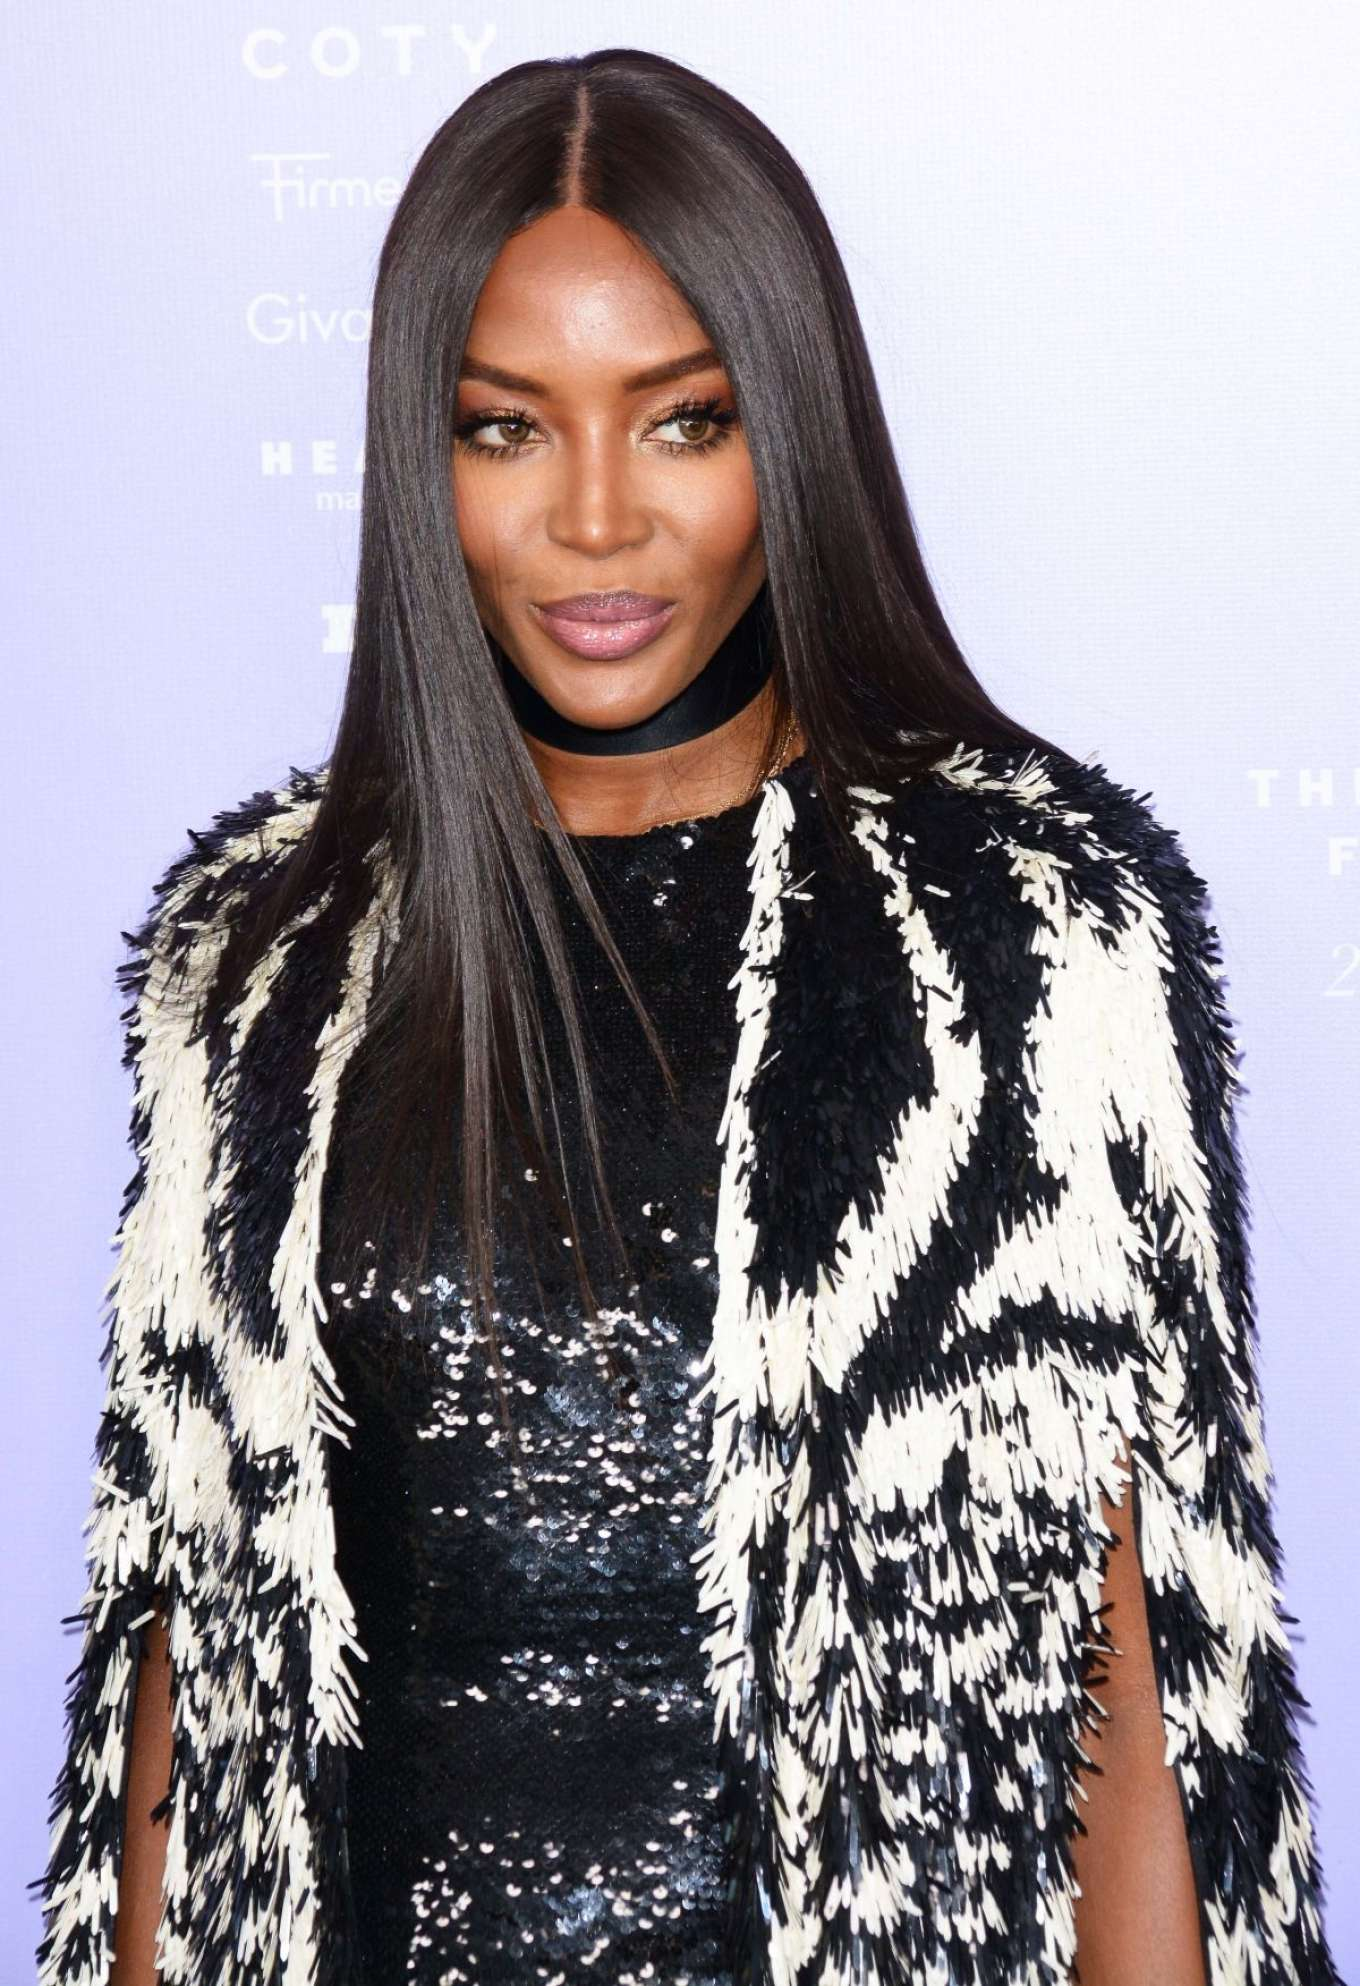 Naomi Campbell - 2018 Fragrance Foundation Awards in New York